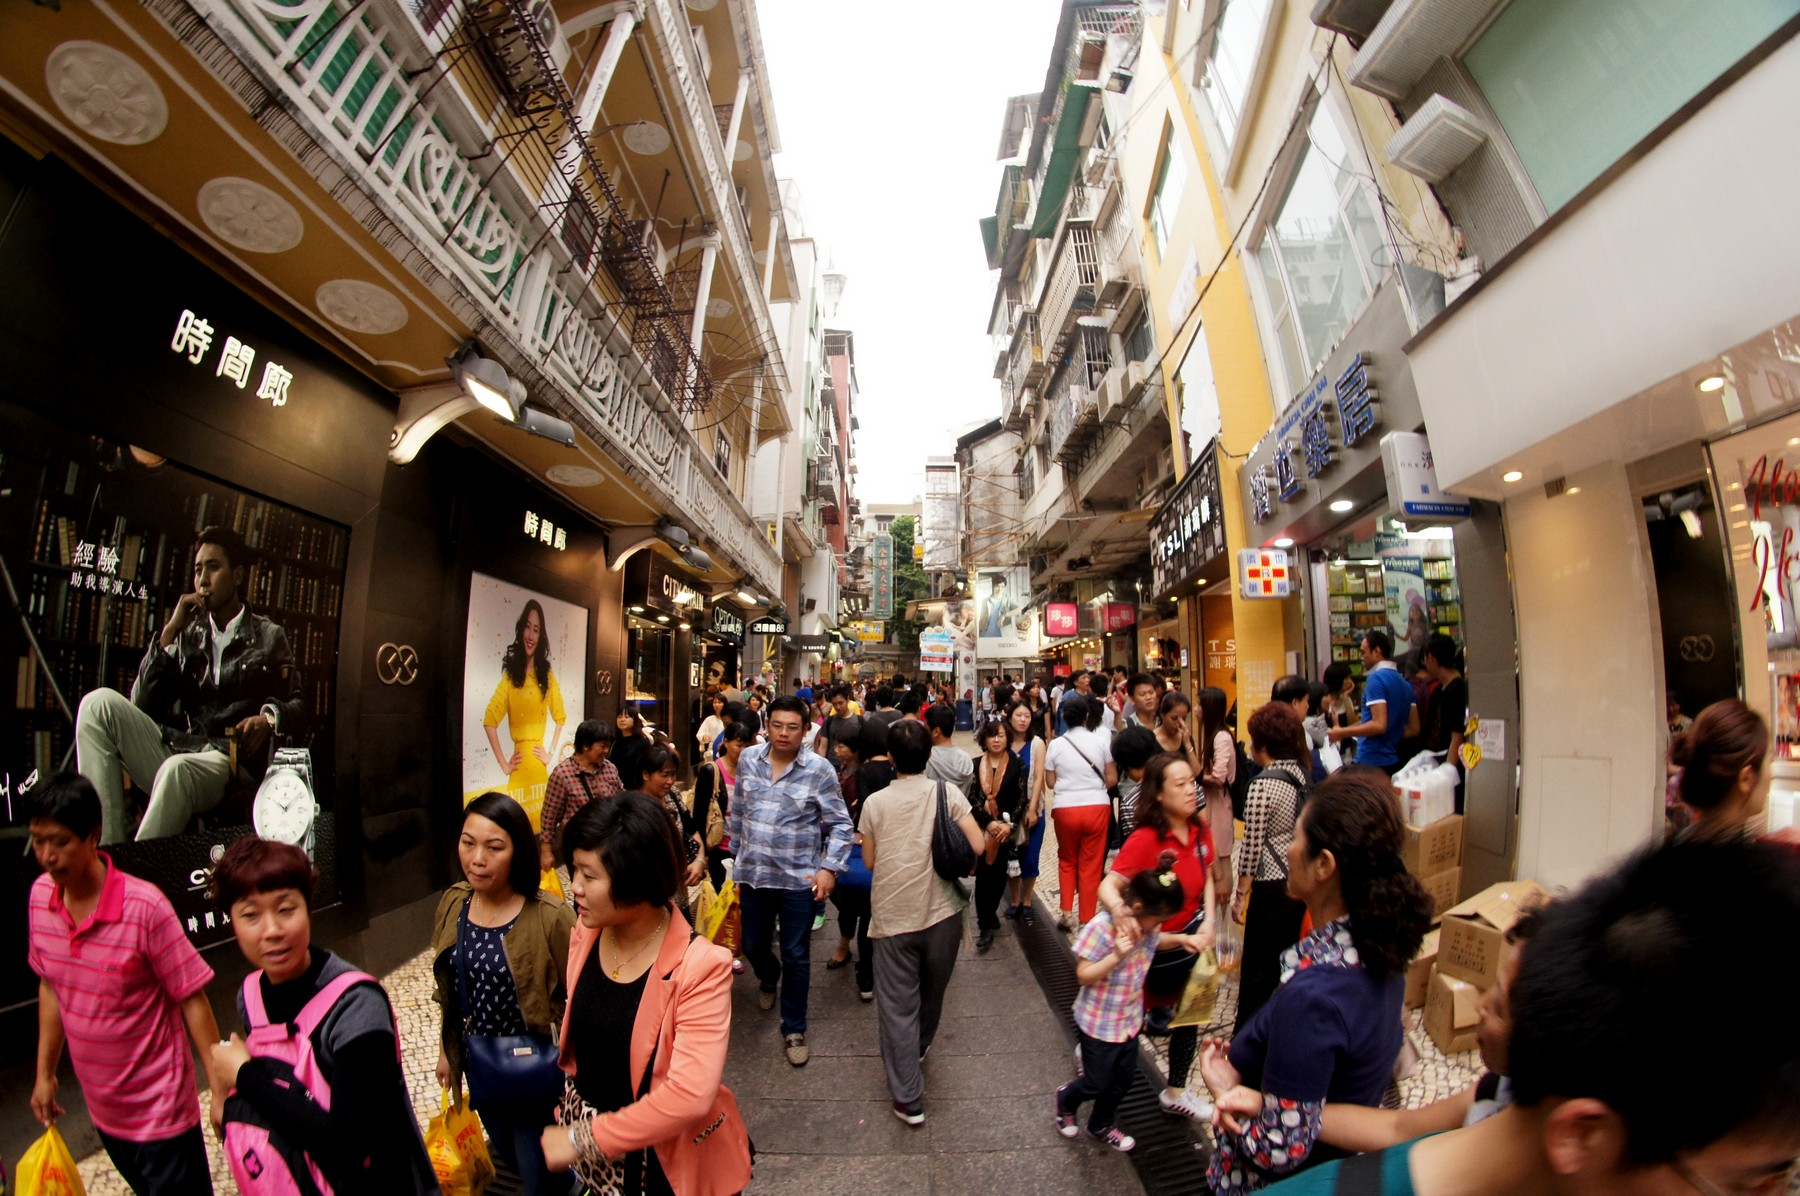 Macau records the highest population density per sq km